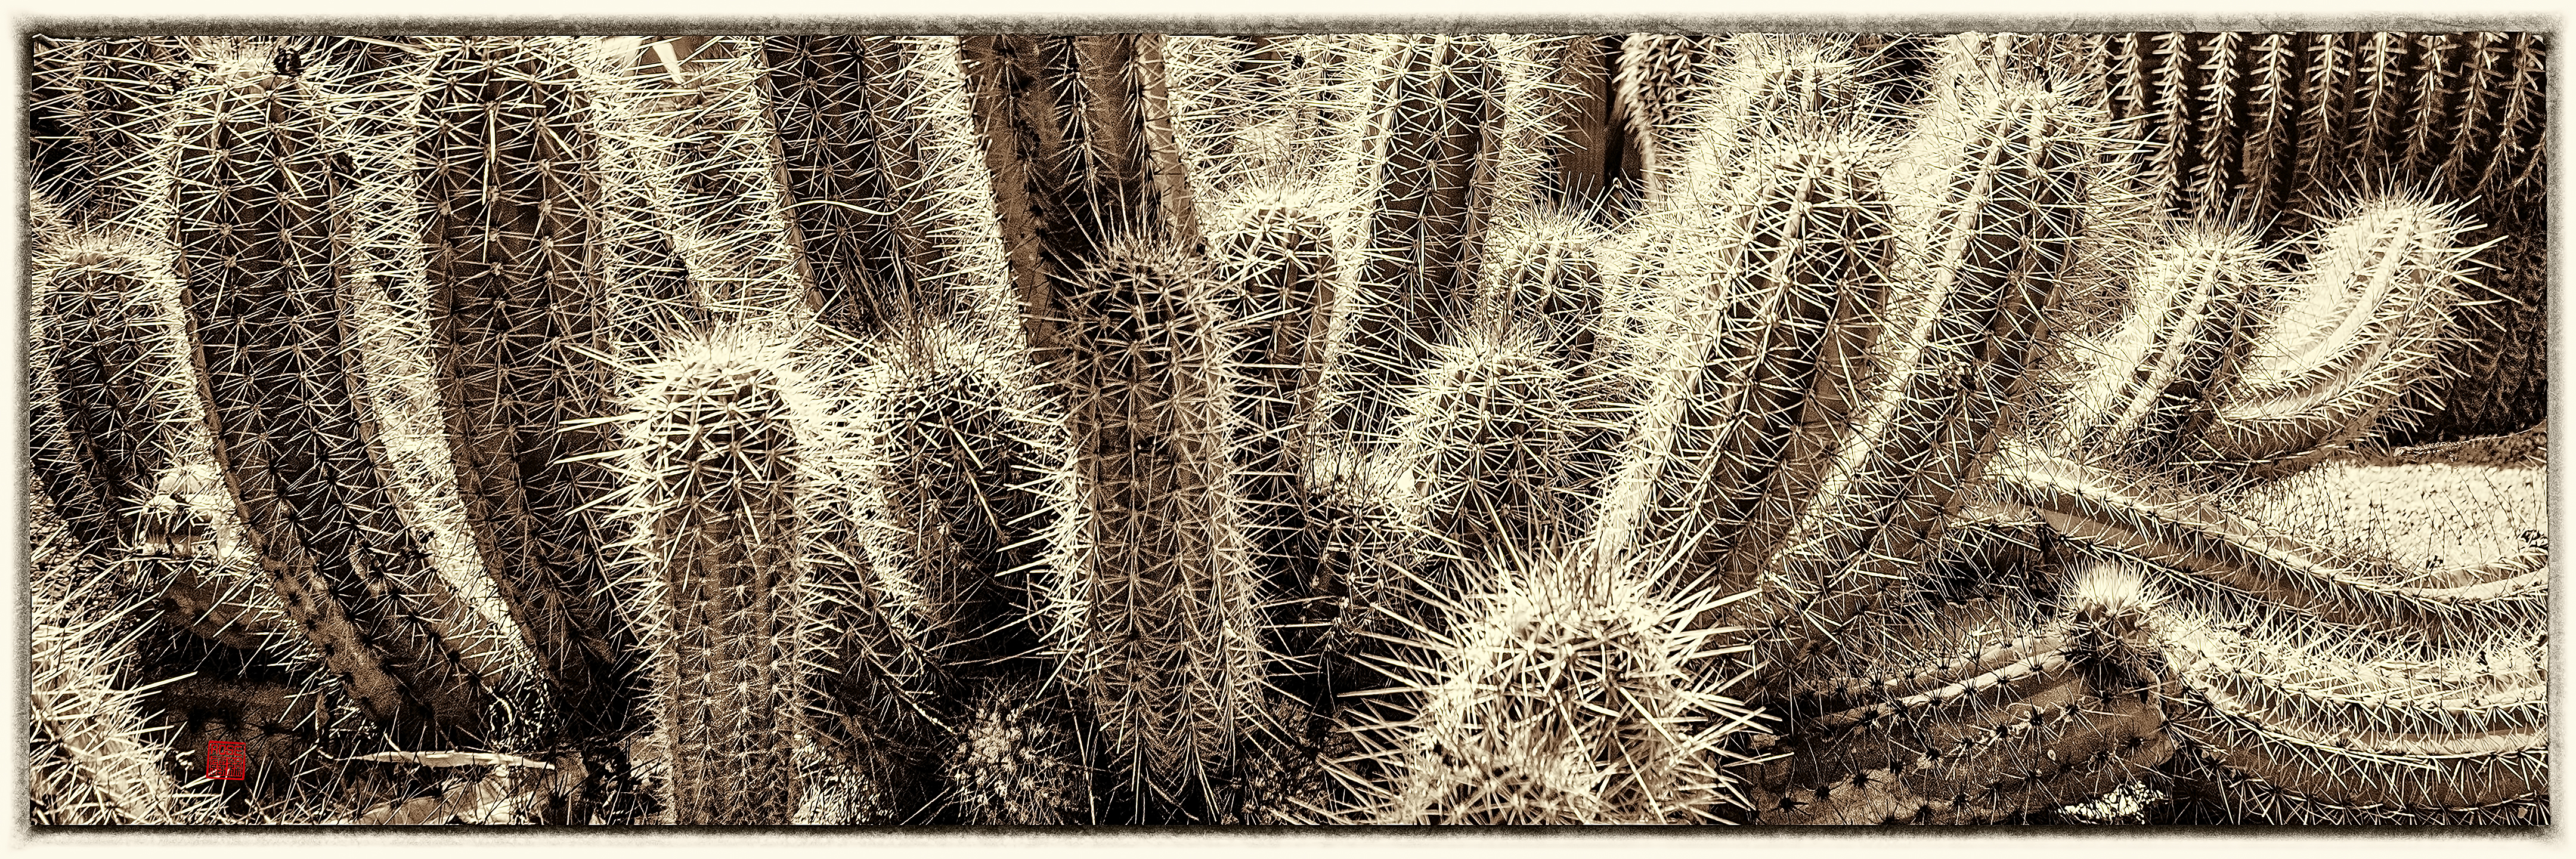 Texas Spiny Lizard Amid Cacti